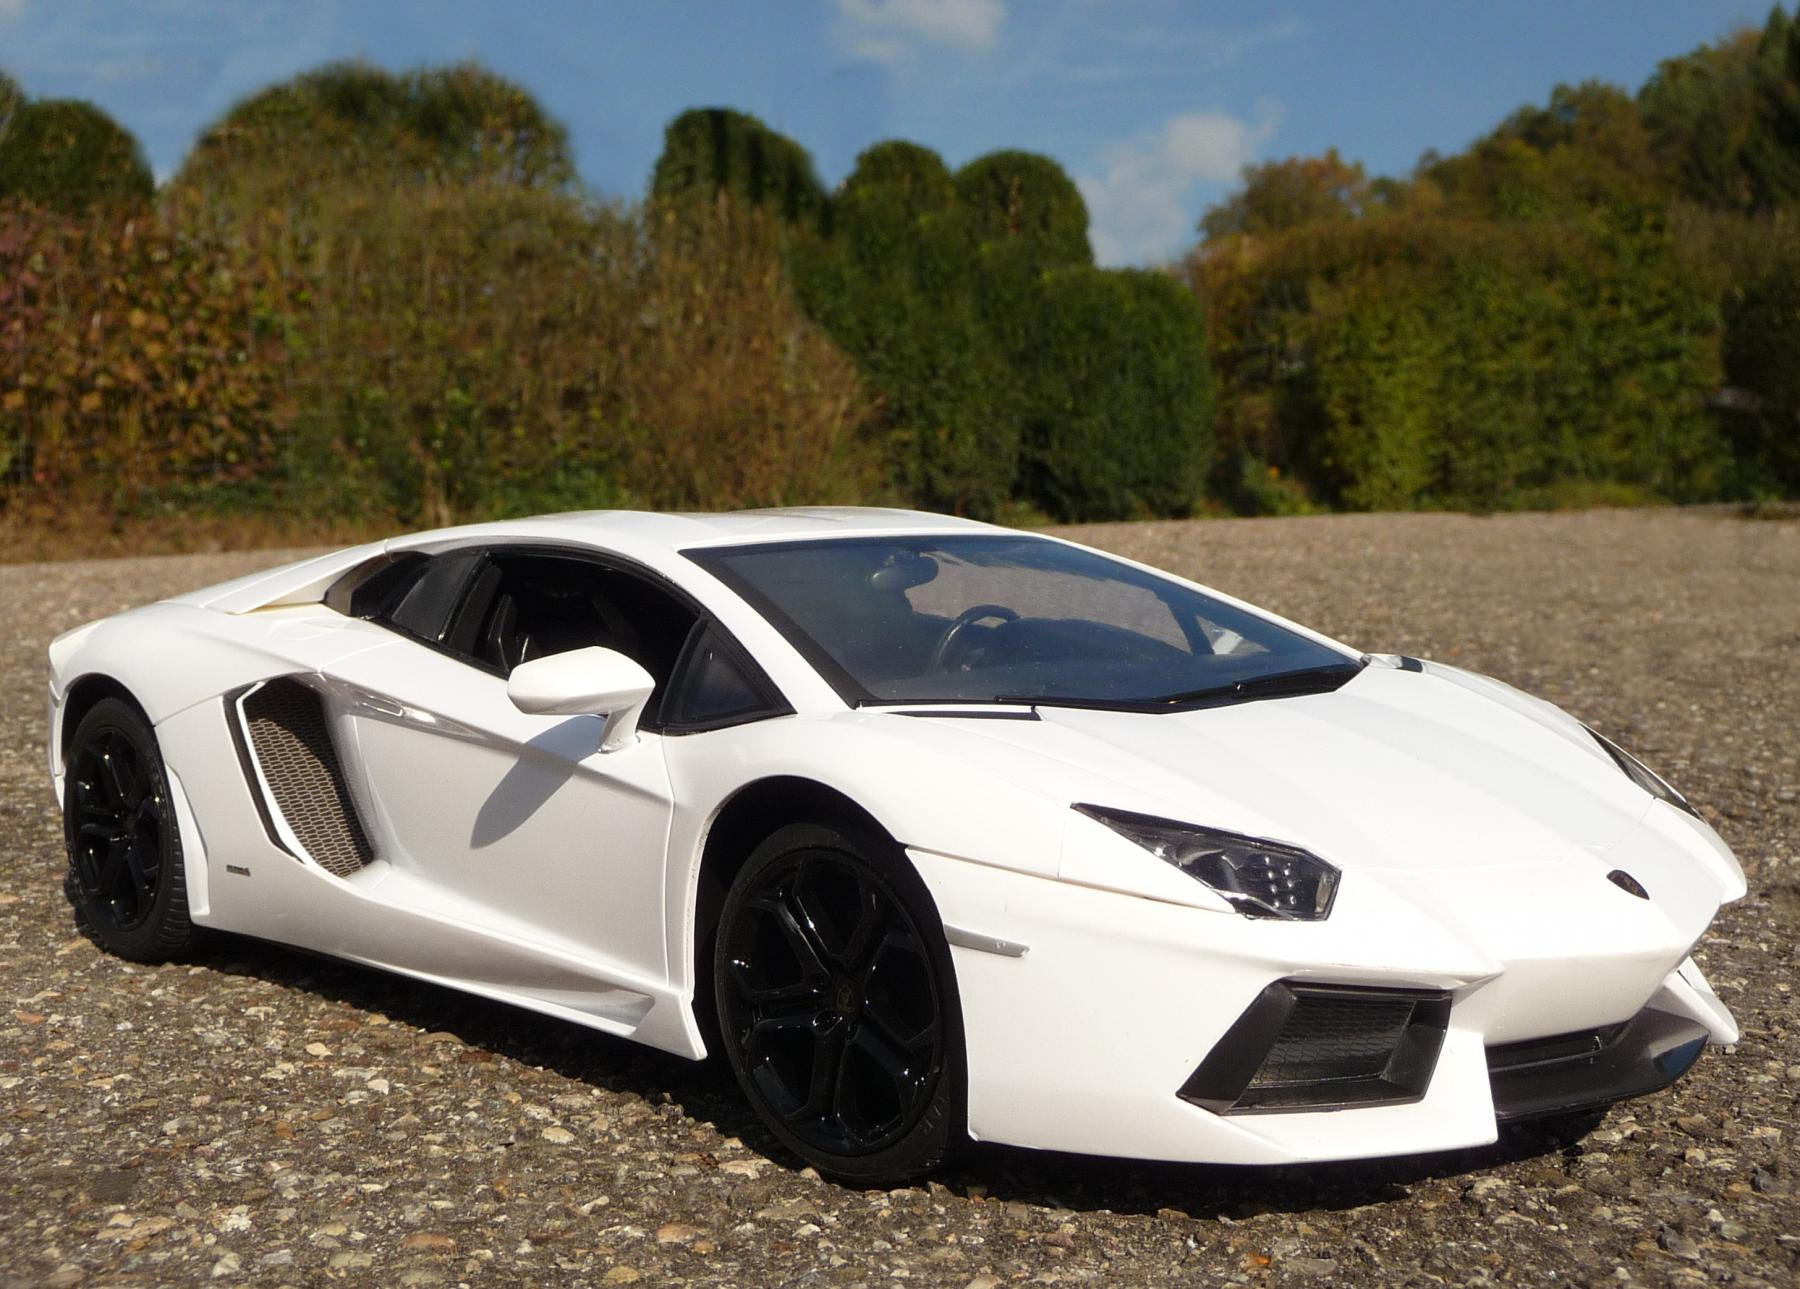 rc lamborghini aventador weiss 33cm mit 40mhz. Black Bedroom Furniture Sets. Home Design Ideas